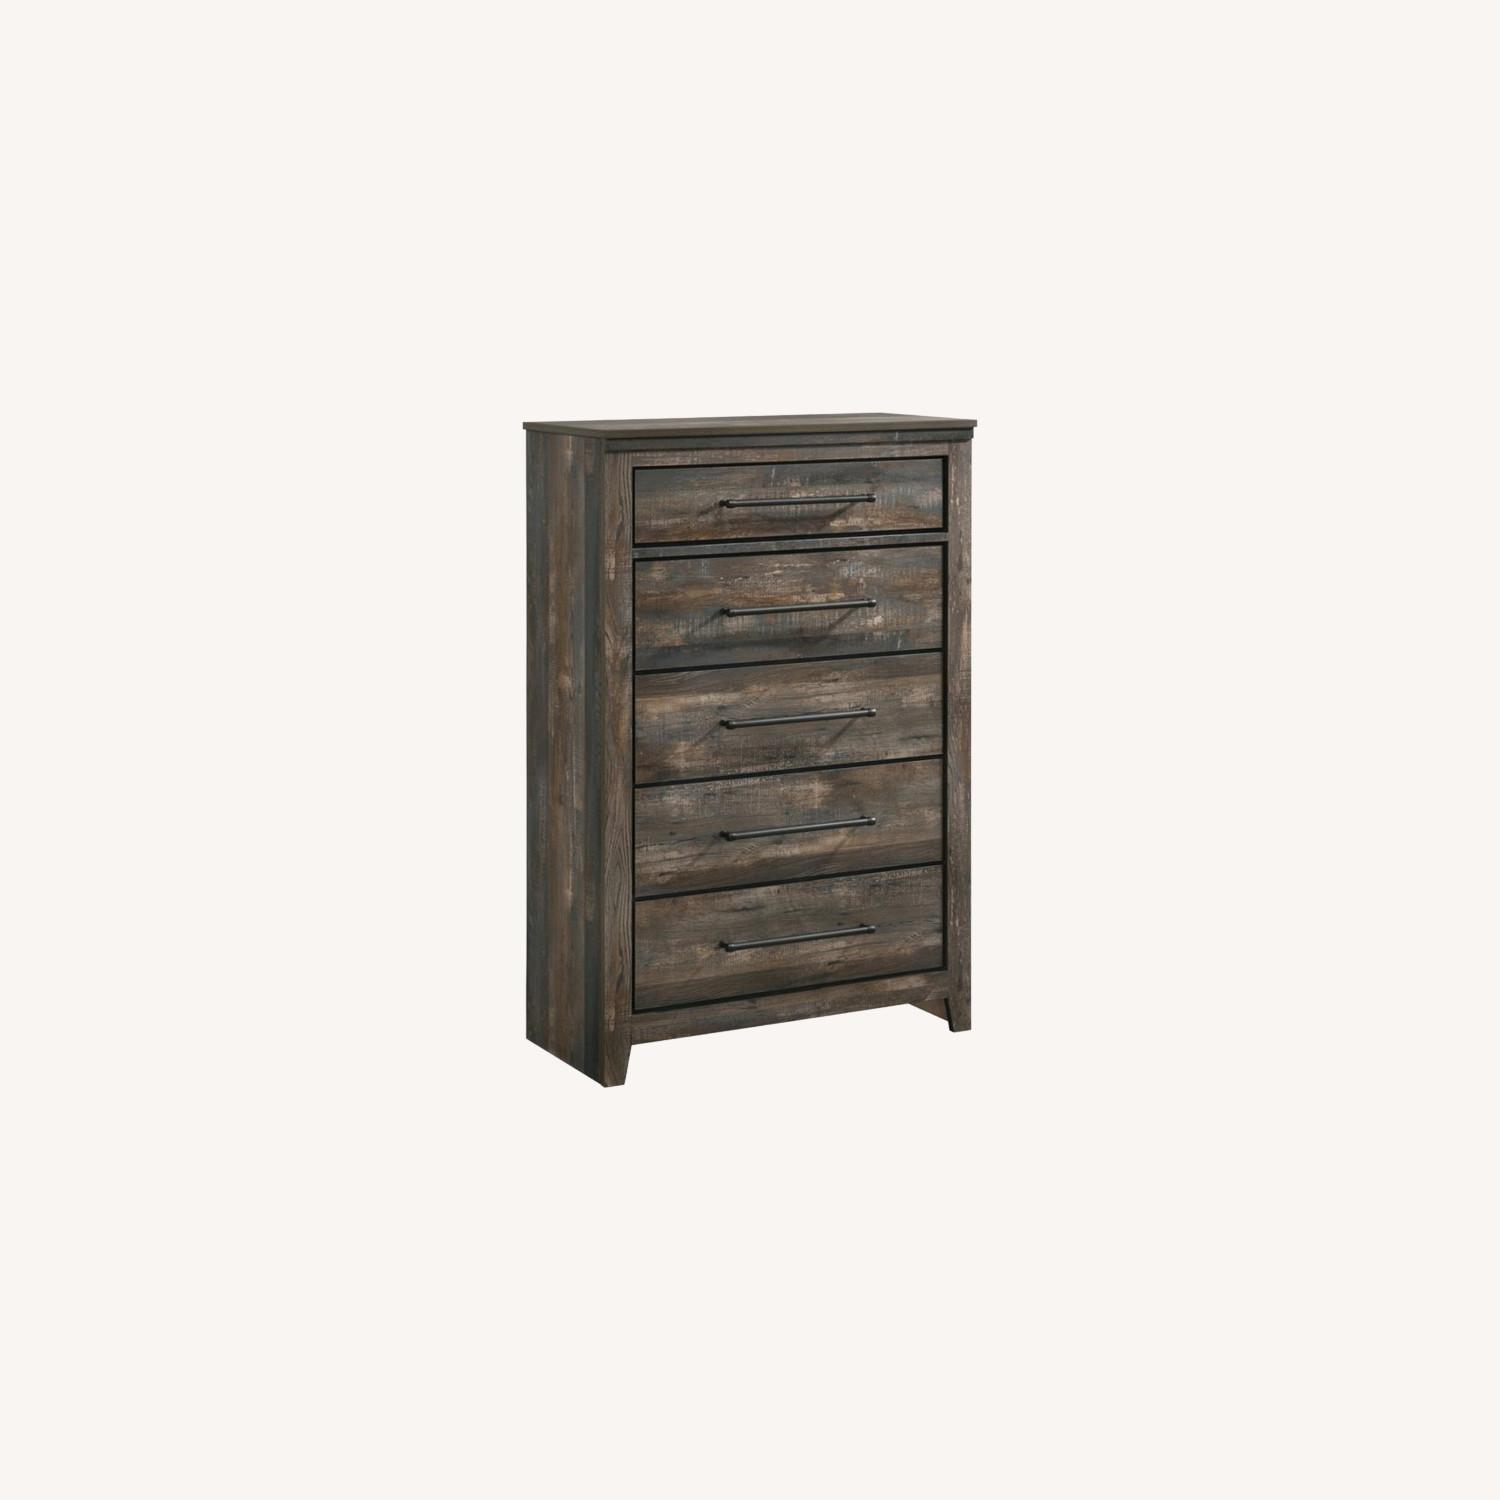 Chest W/ 5 Drawers In Weathered Dark Brown - image-3